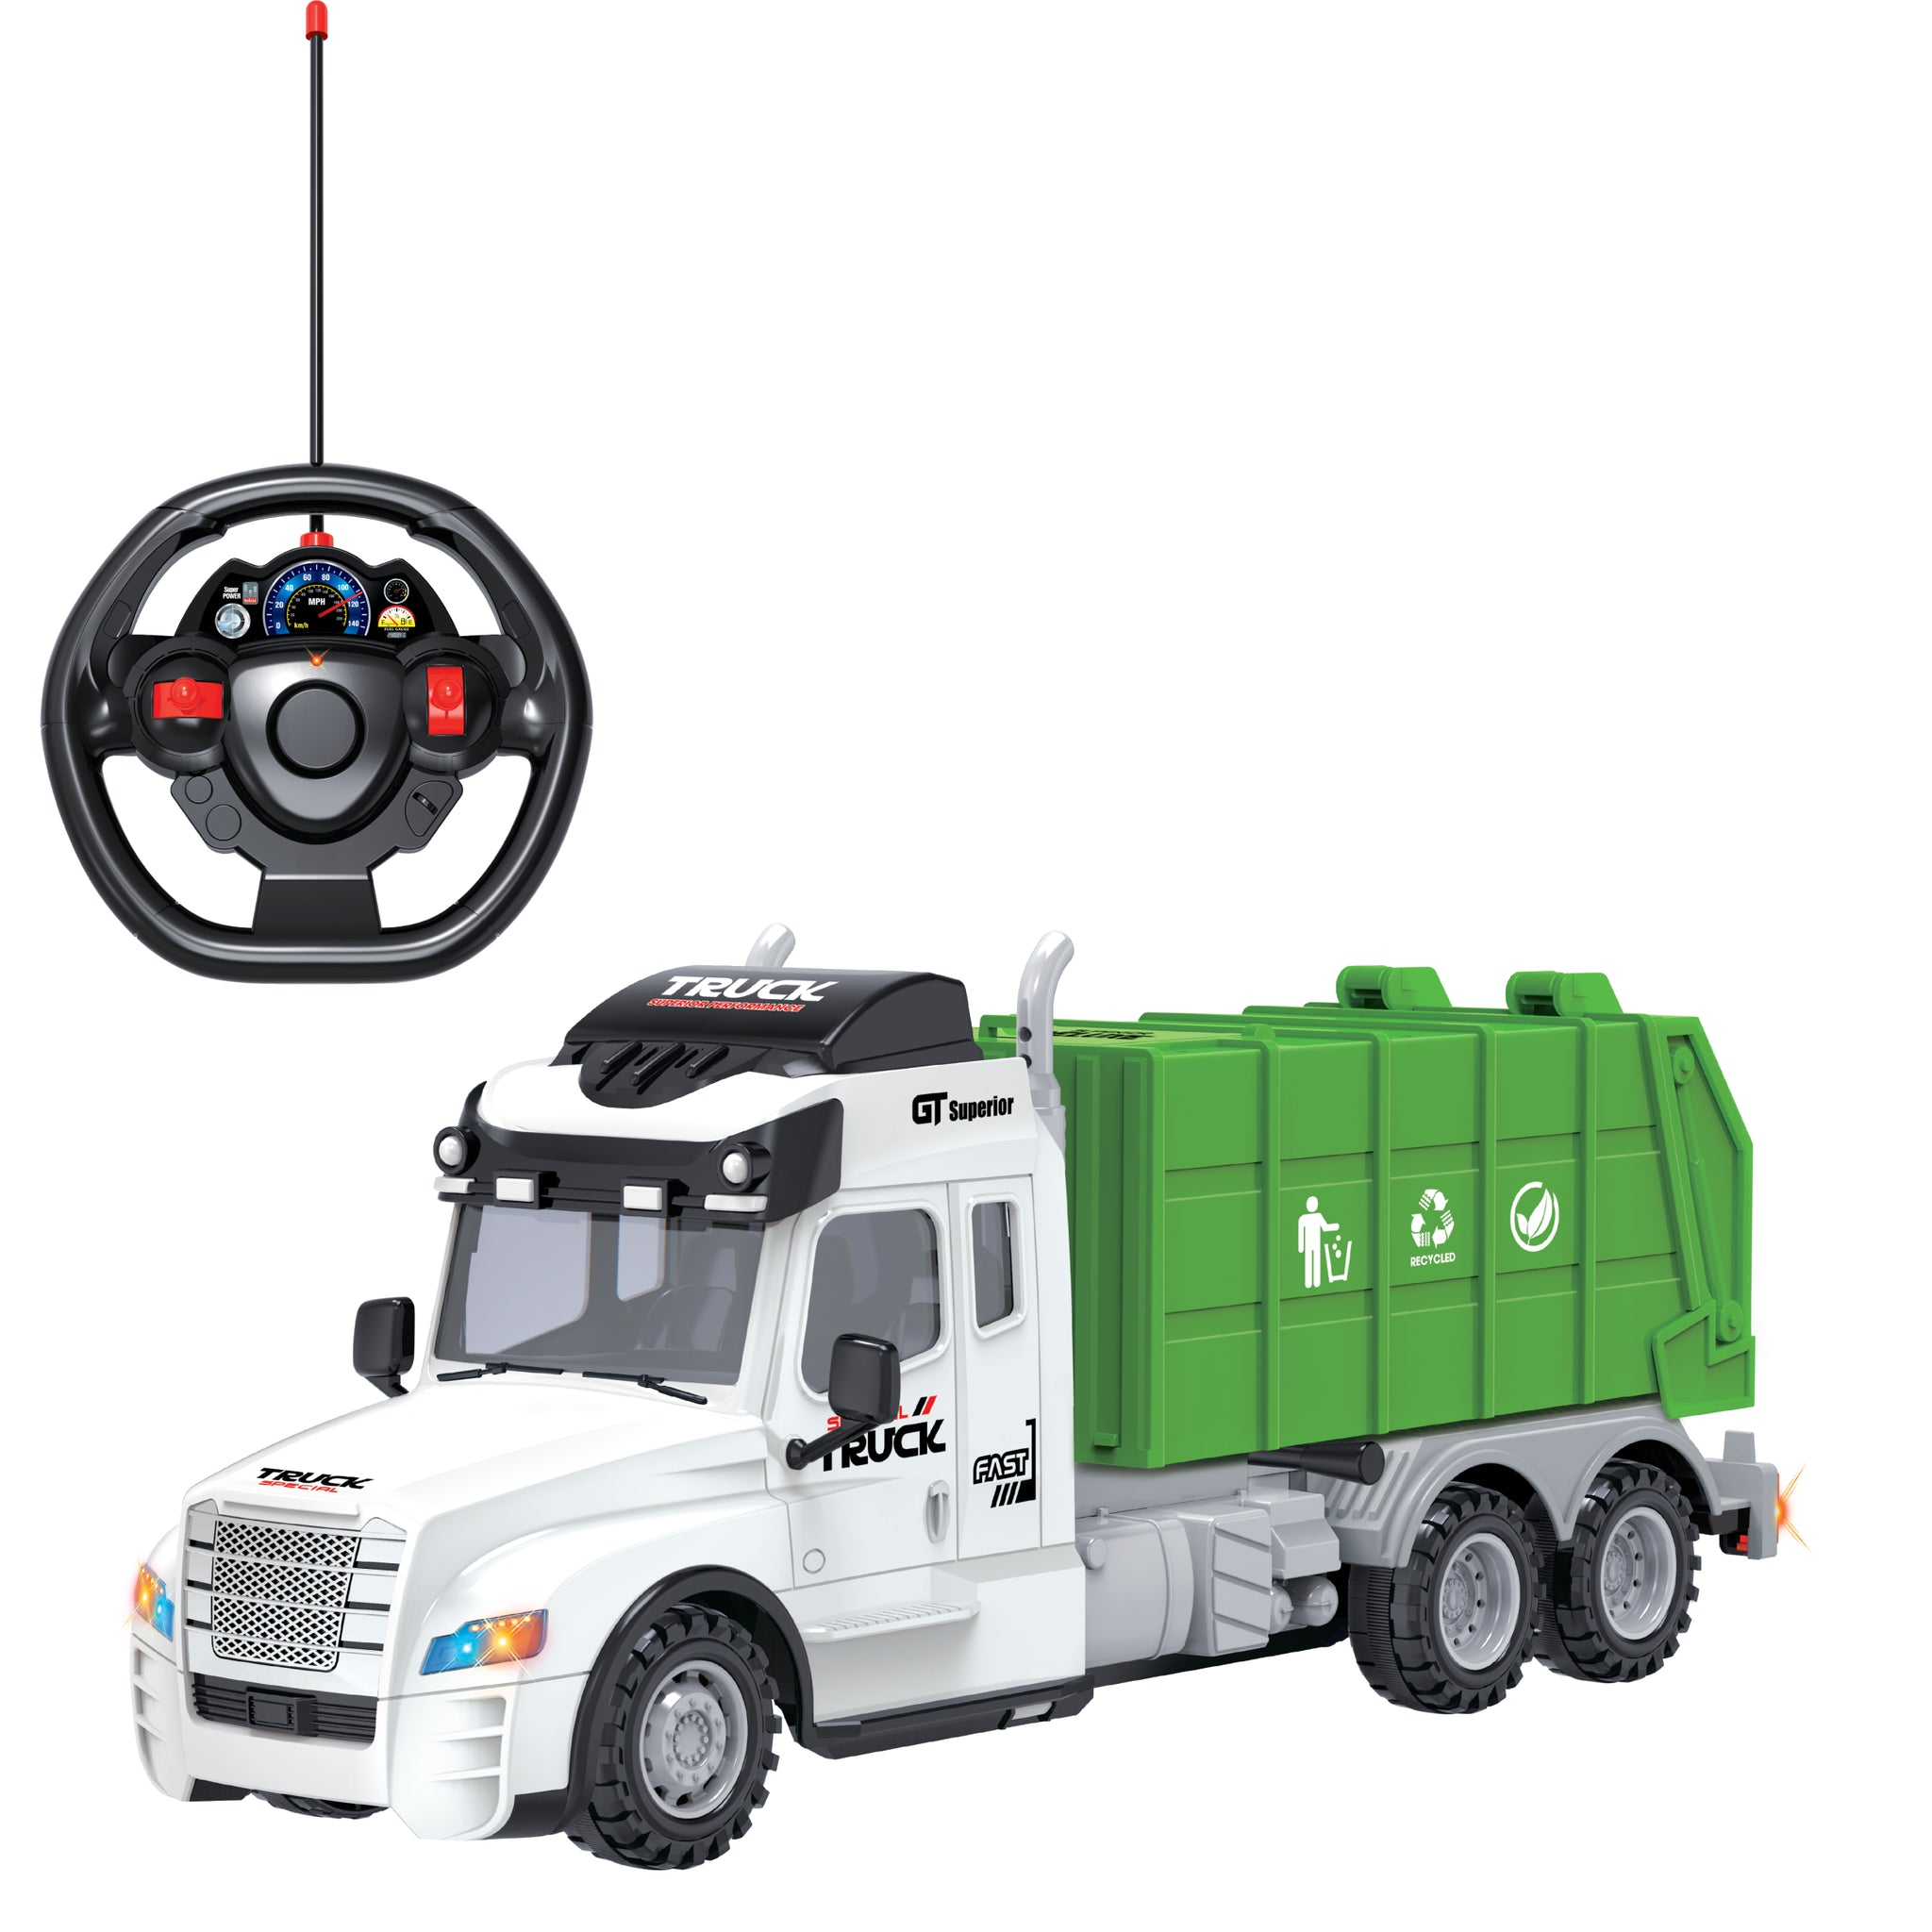 Full Function Remote Control Garbage  Truck with Lights